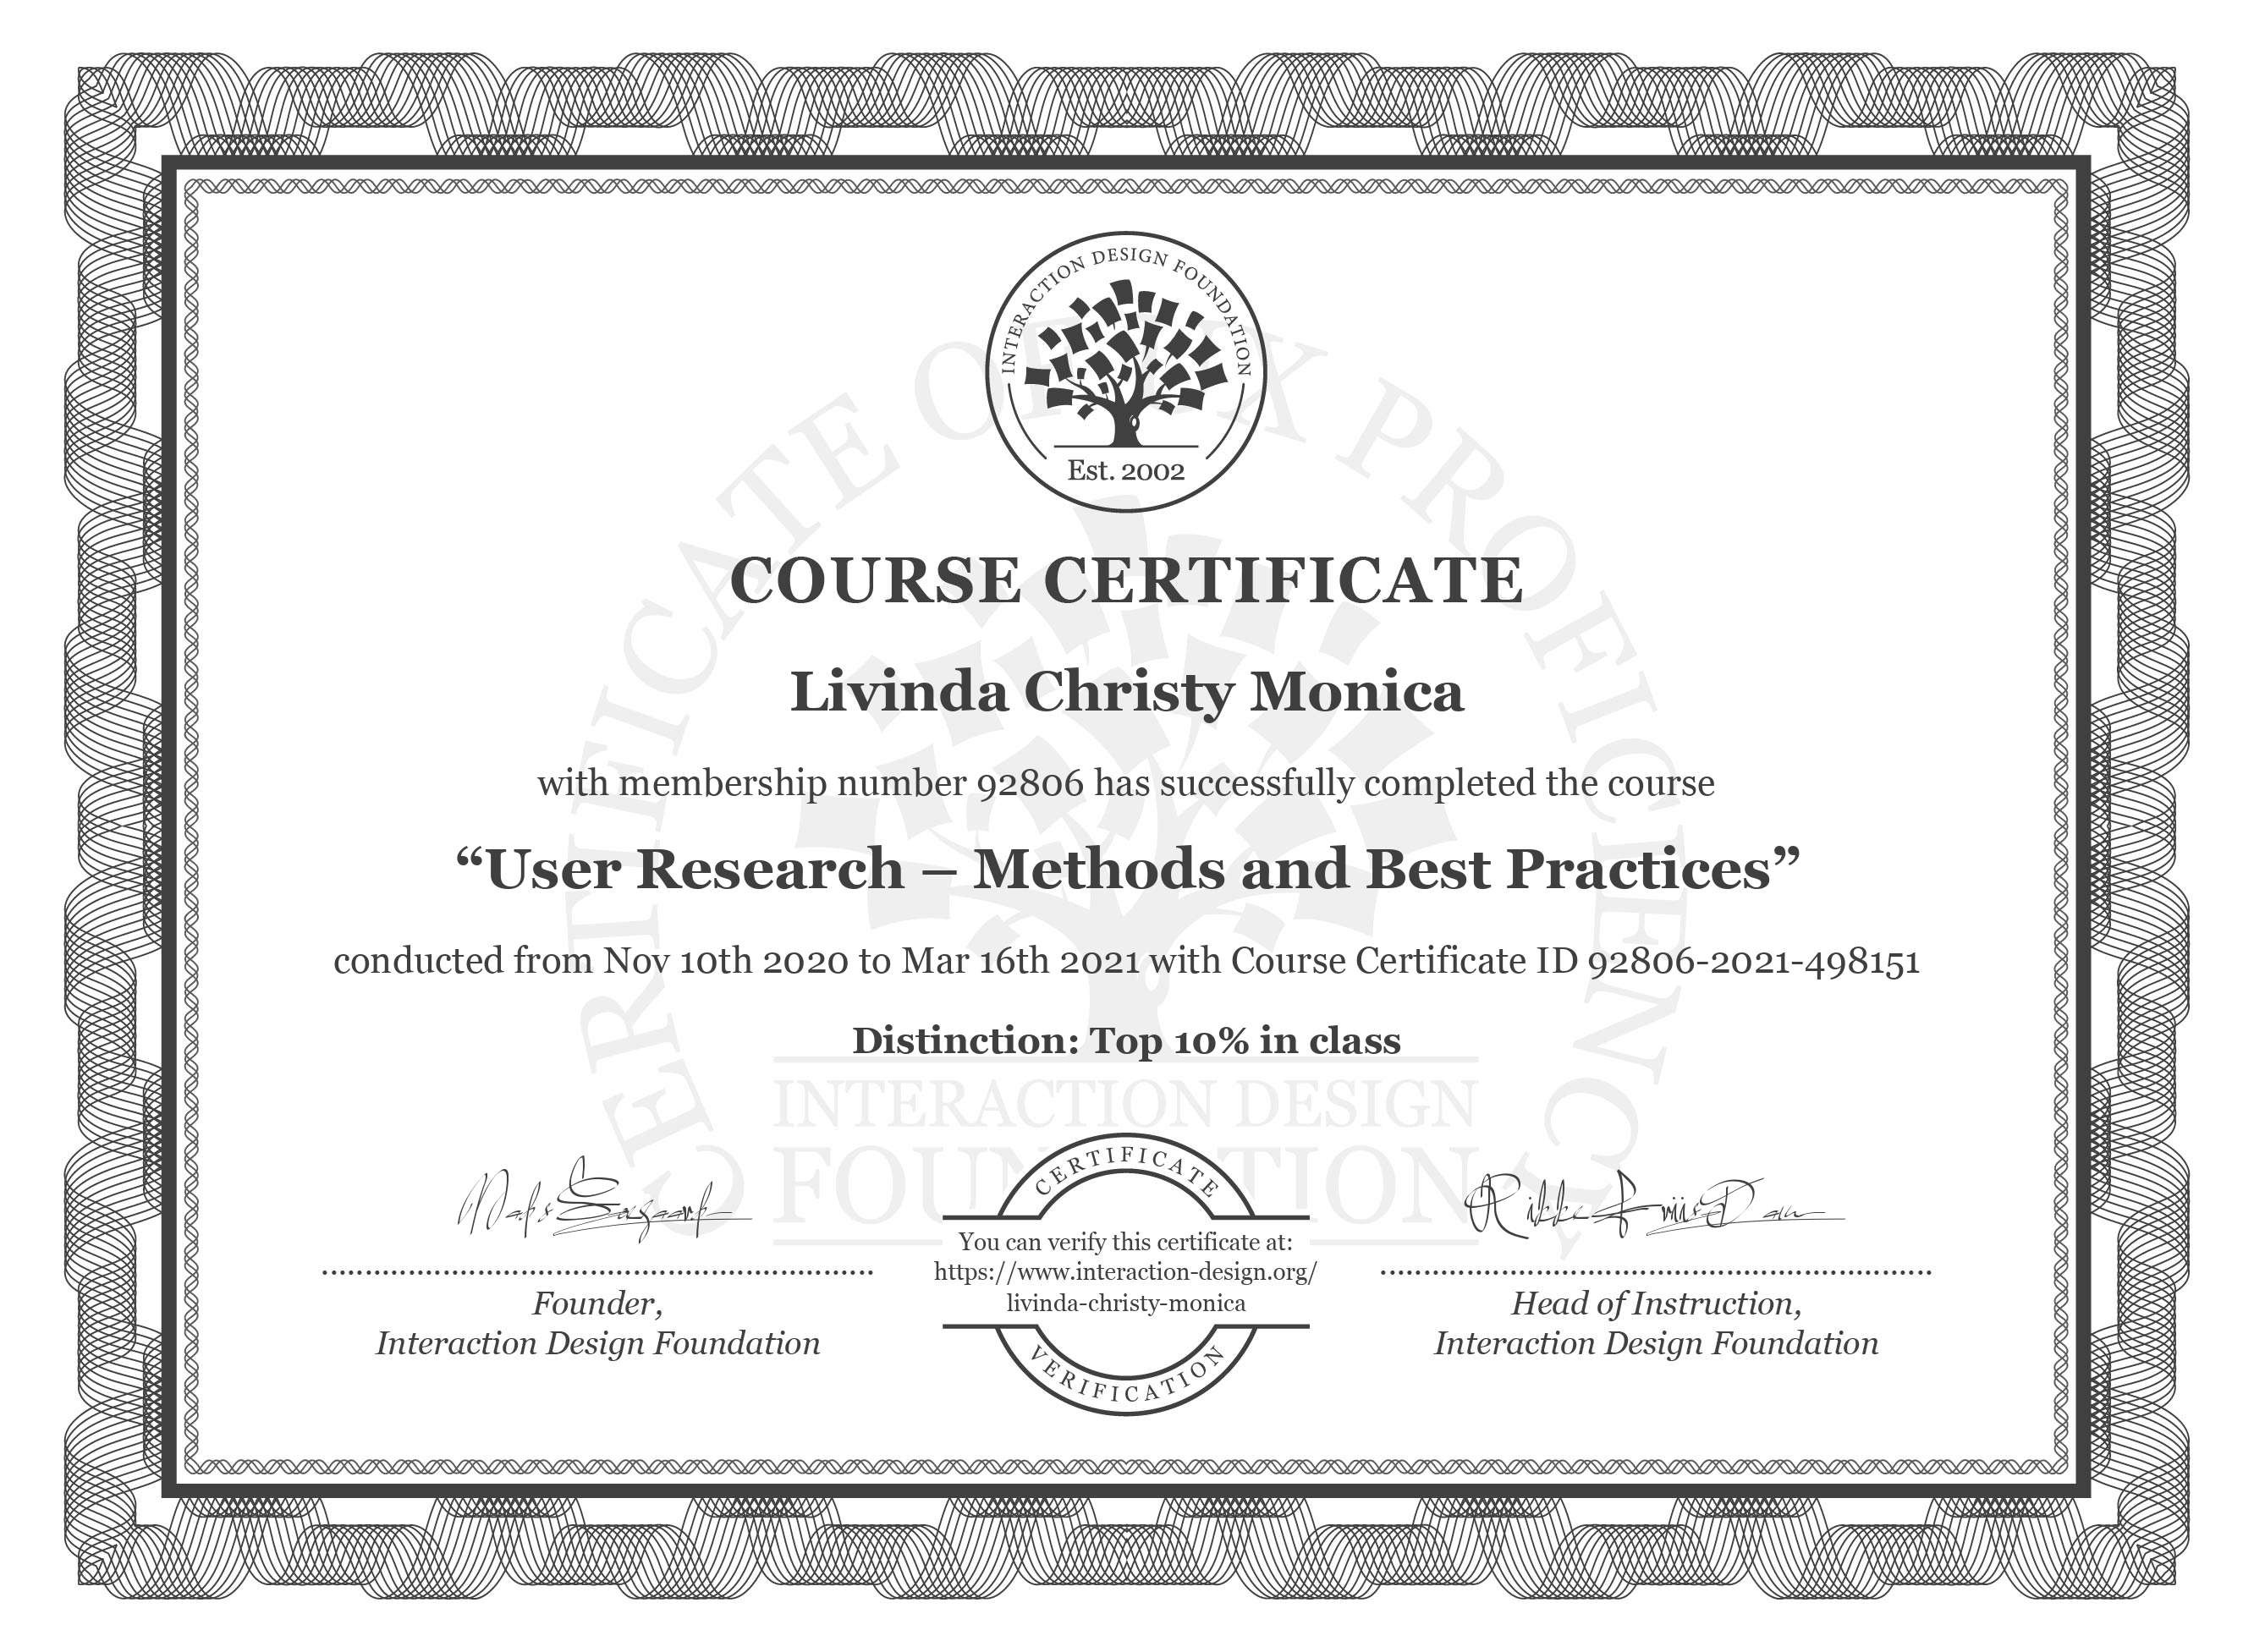 Livinda's course certificate of User Research—Methods and Best Practices